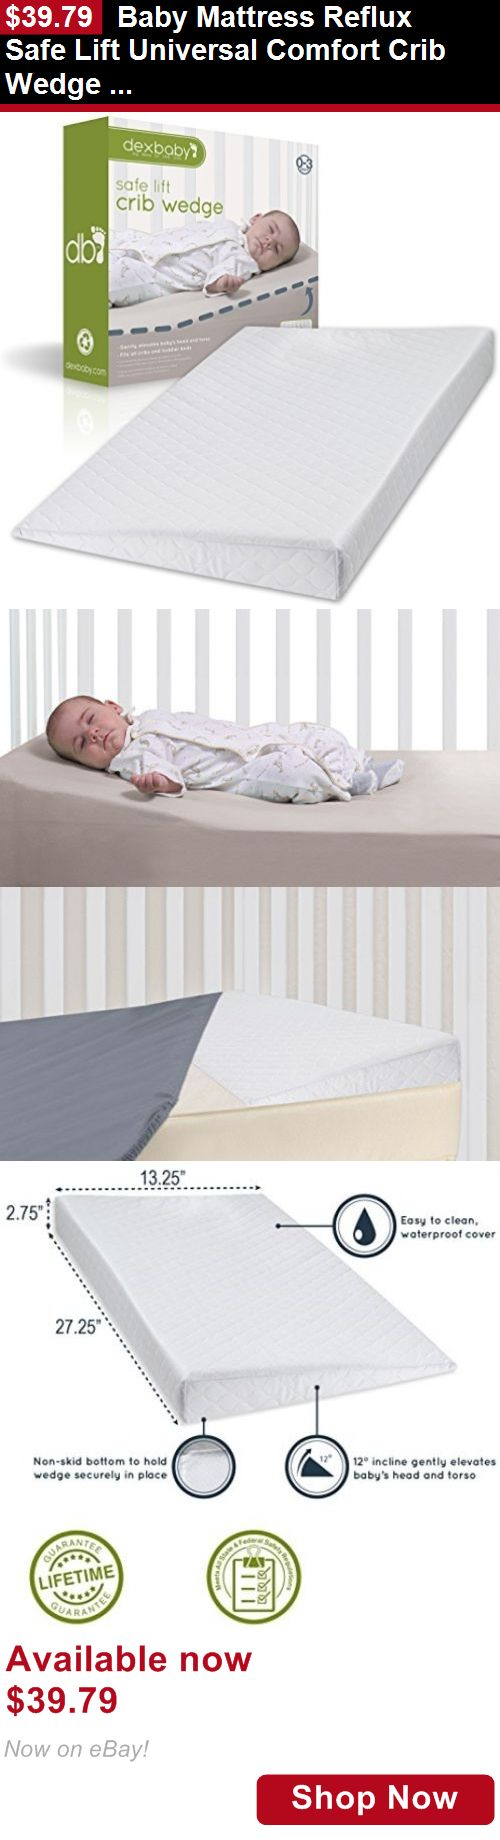 Baby Safety Sleep Positioners Mattress Reflux Safe Lift Universal Comfort Crib Wedge Positioner BUY IT NOW ONLY 3979